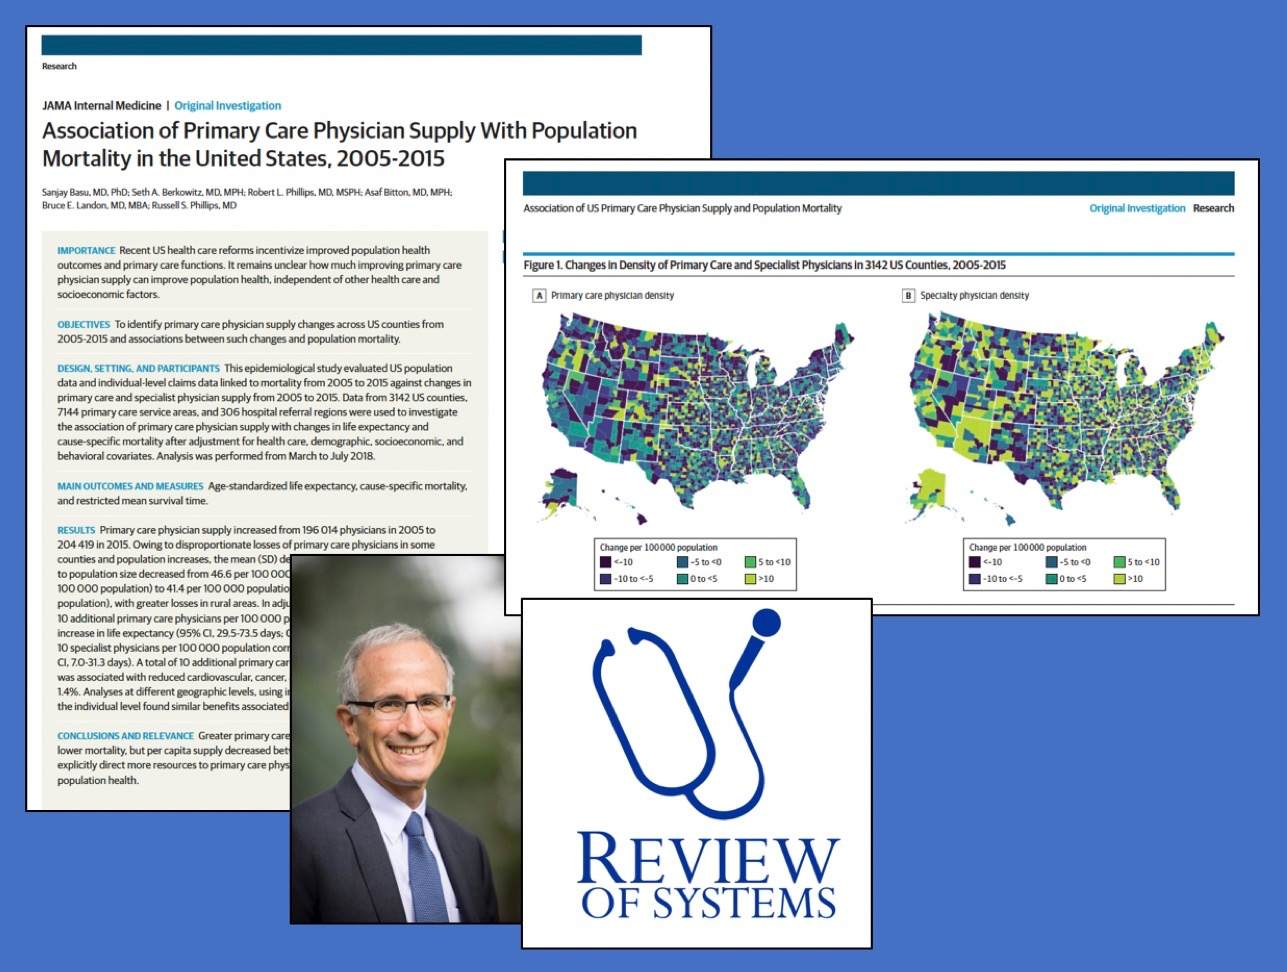 Reprise: Understanding the Association of Primary Care Physician Supply and Mortality in the US